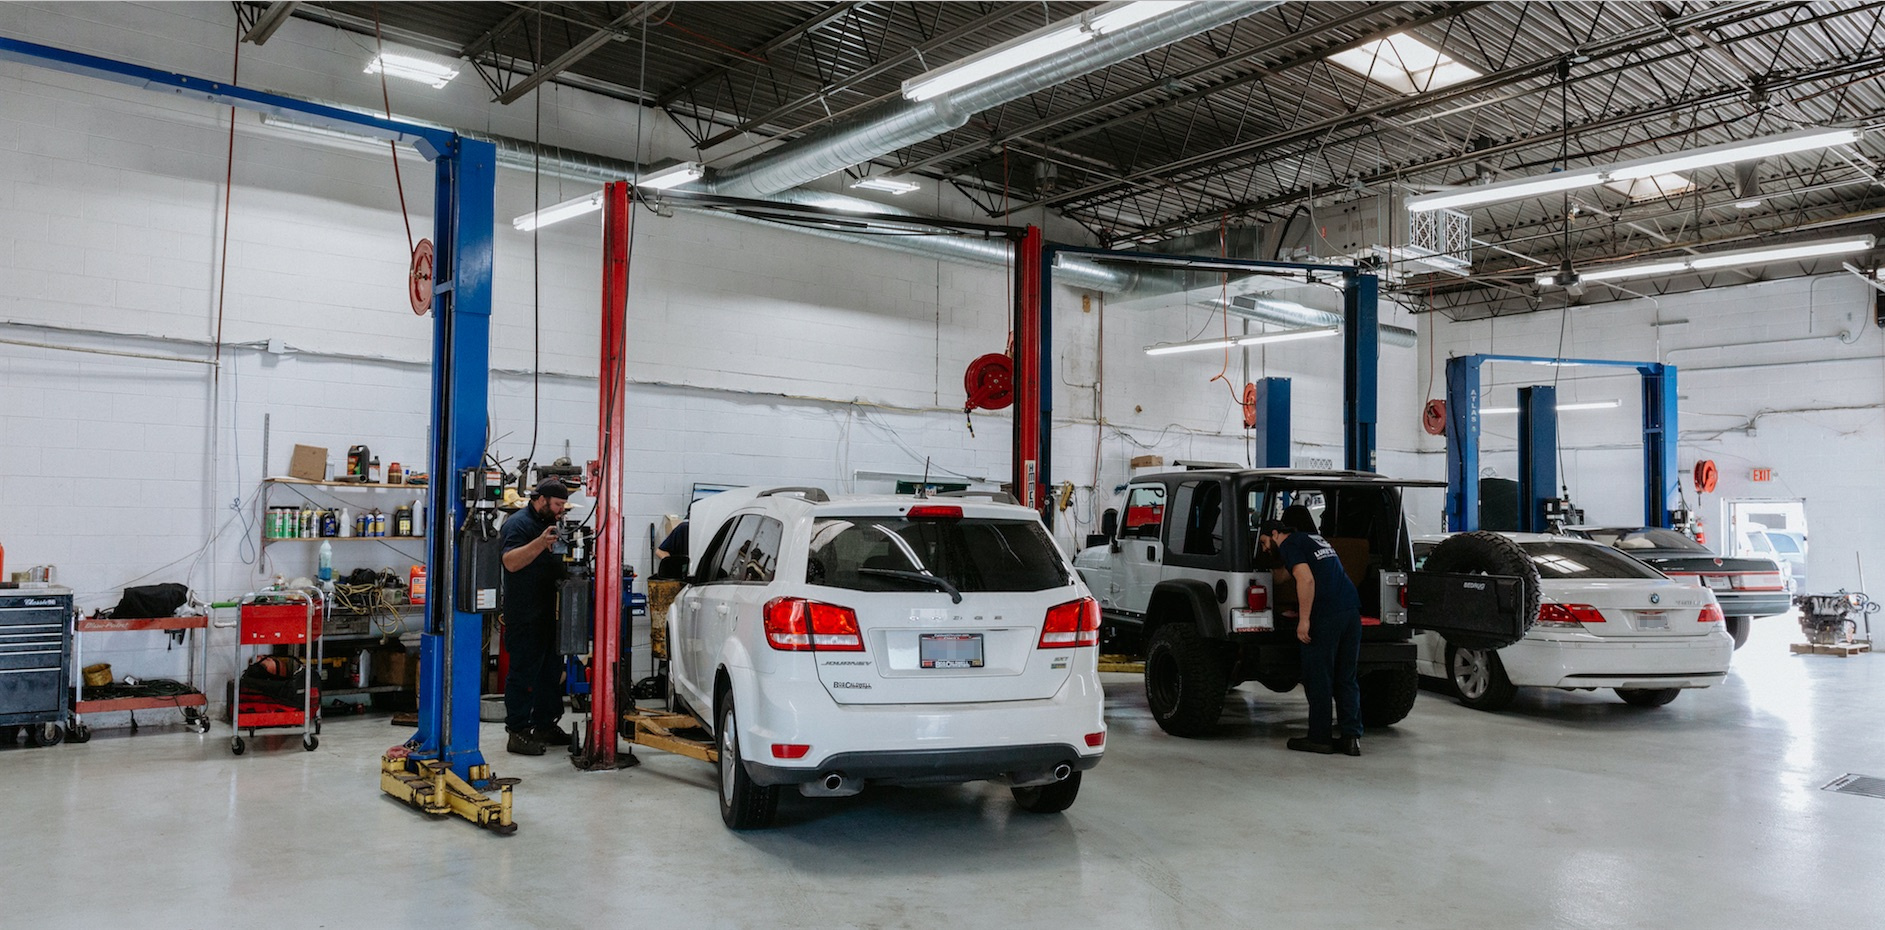 State of the Art Complete Auto-Truck Repair facility-Suffolk Co